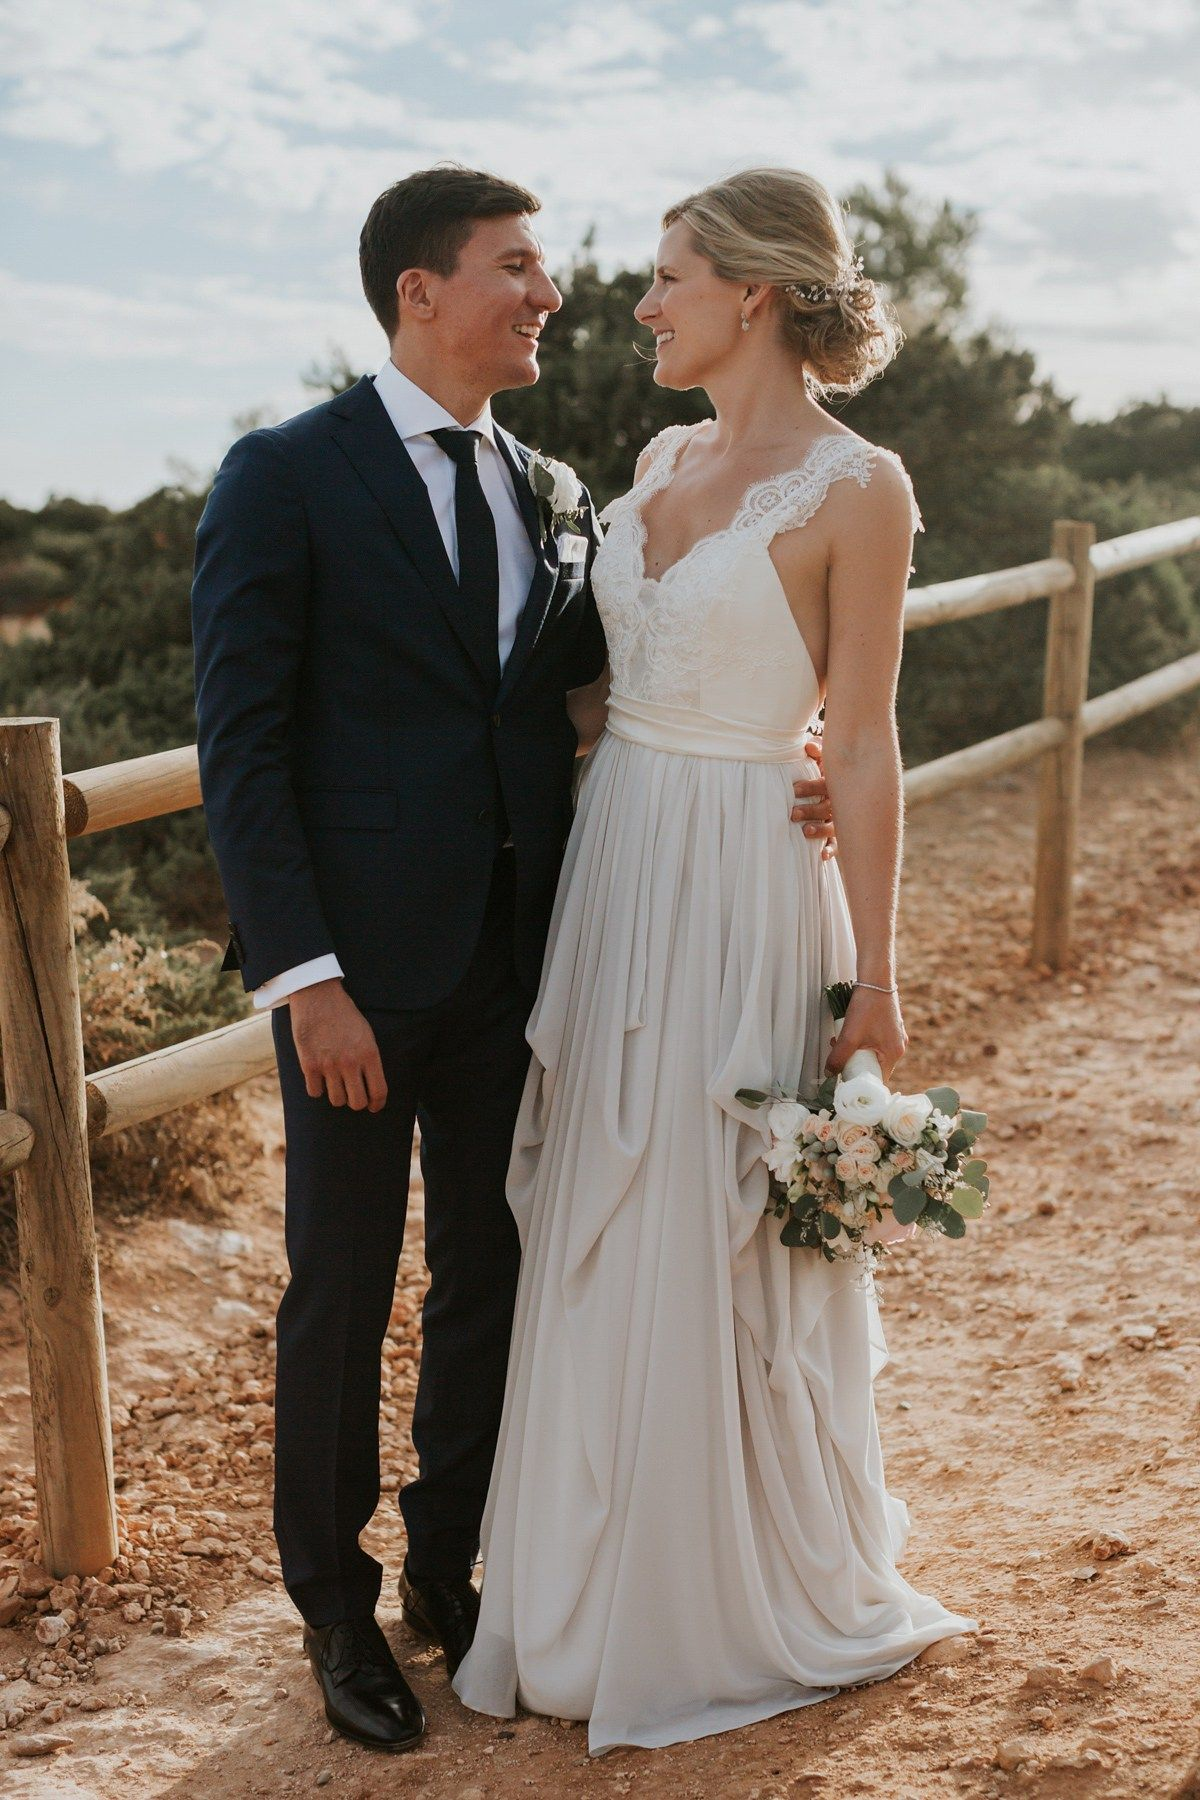 A Two-Toned Truvelle Dress for a Romantic Waterside Wedding in ...